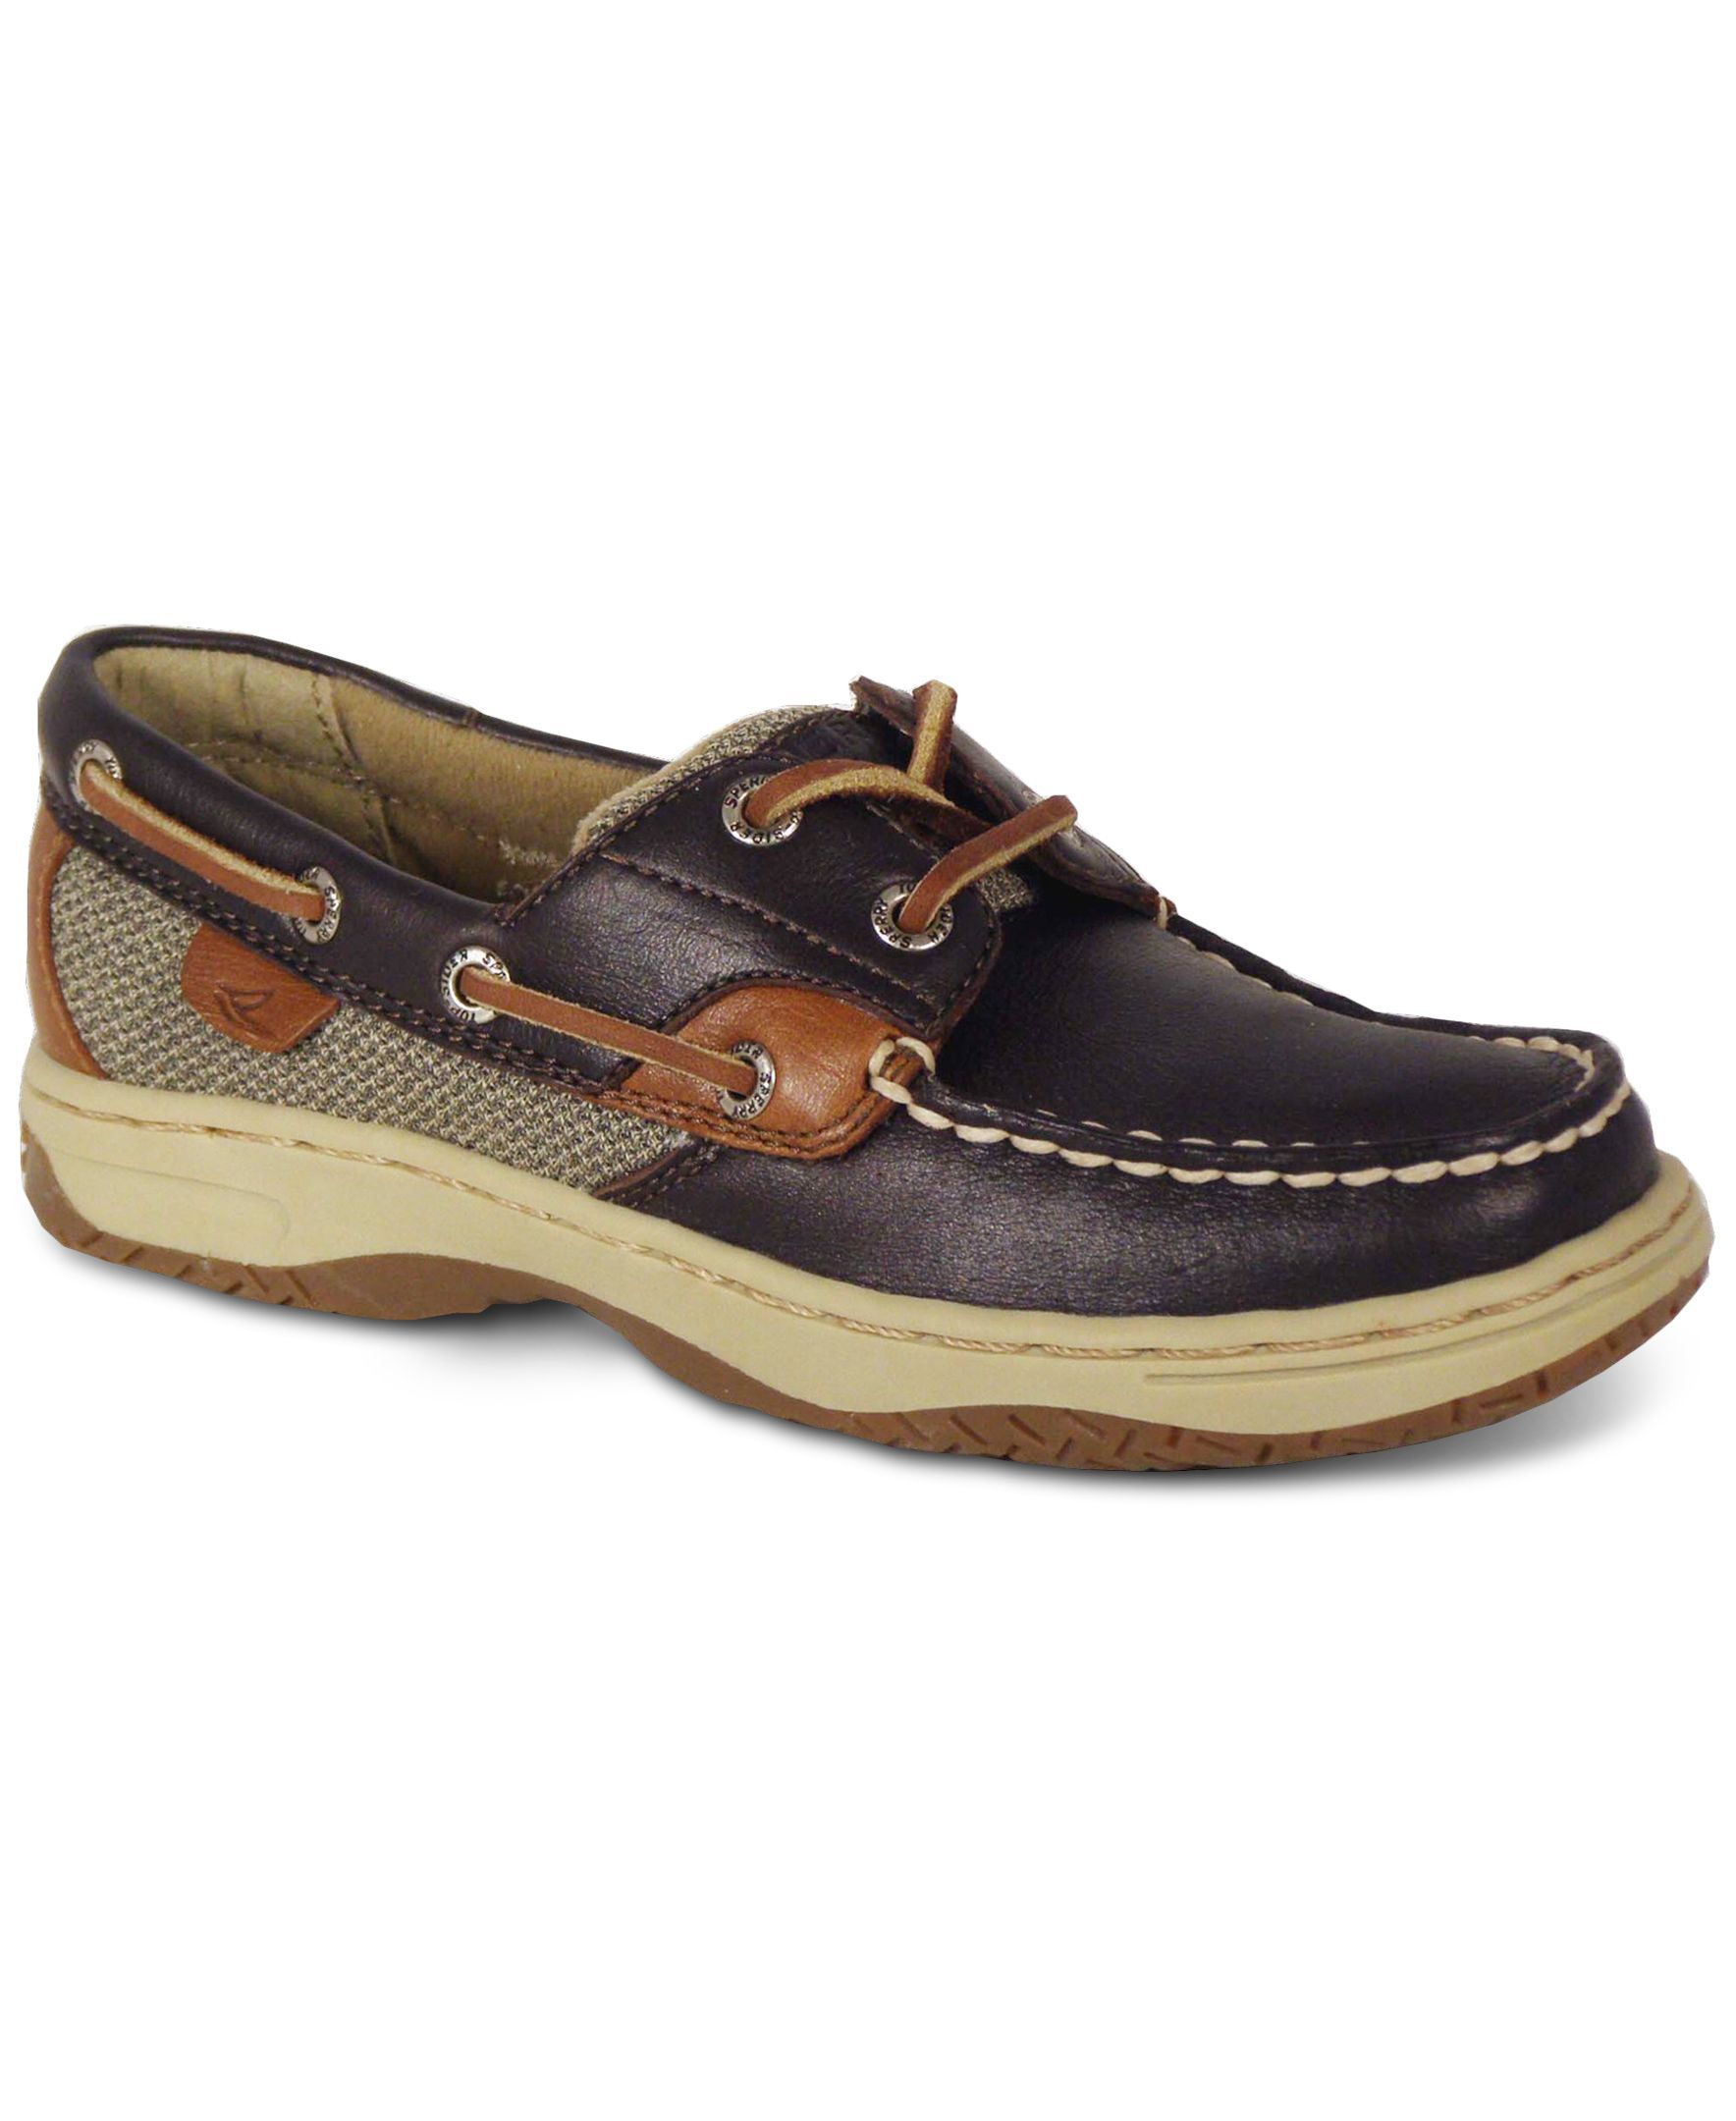 Sperry Kids Shoe Boy s Bluefish Shoes Products